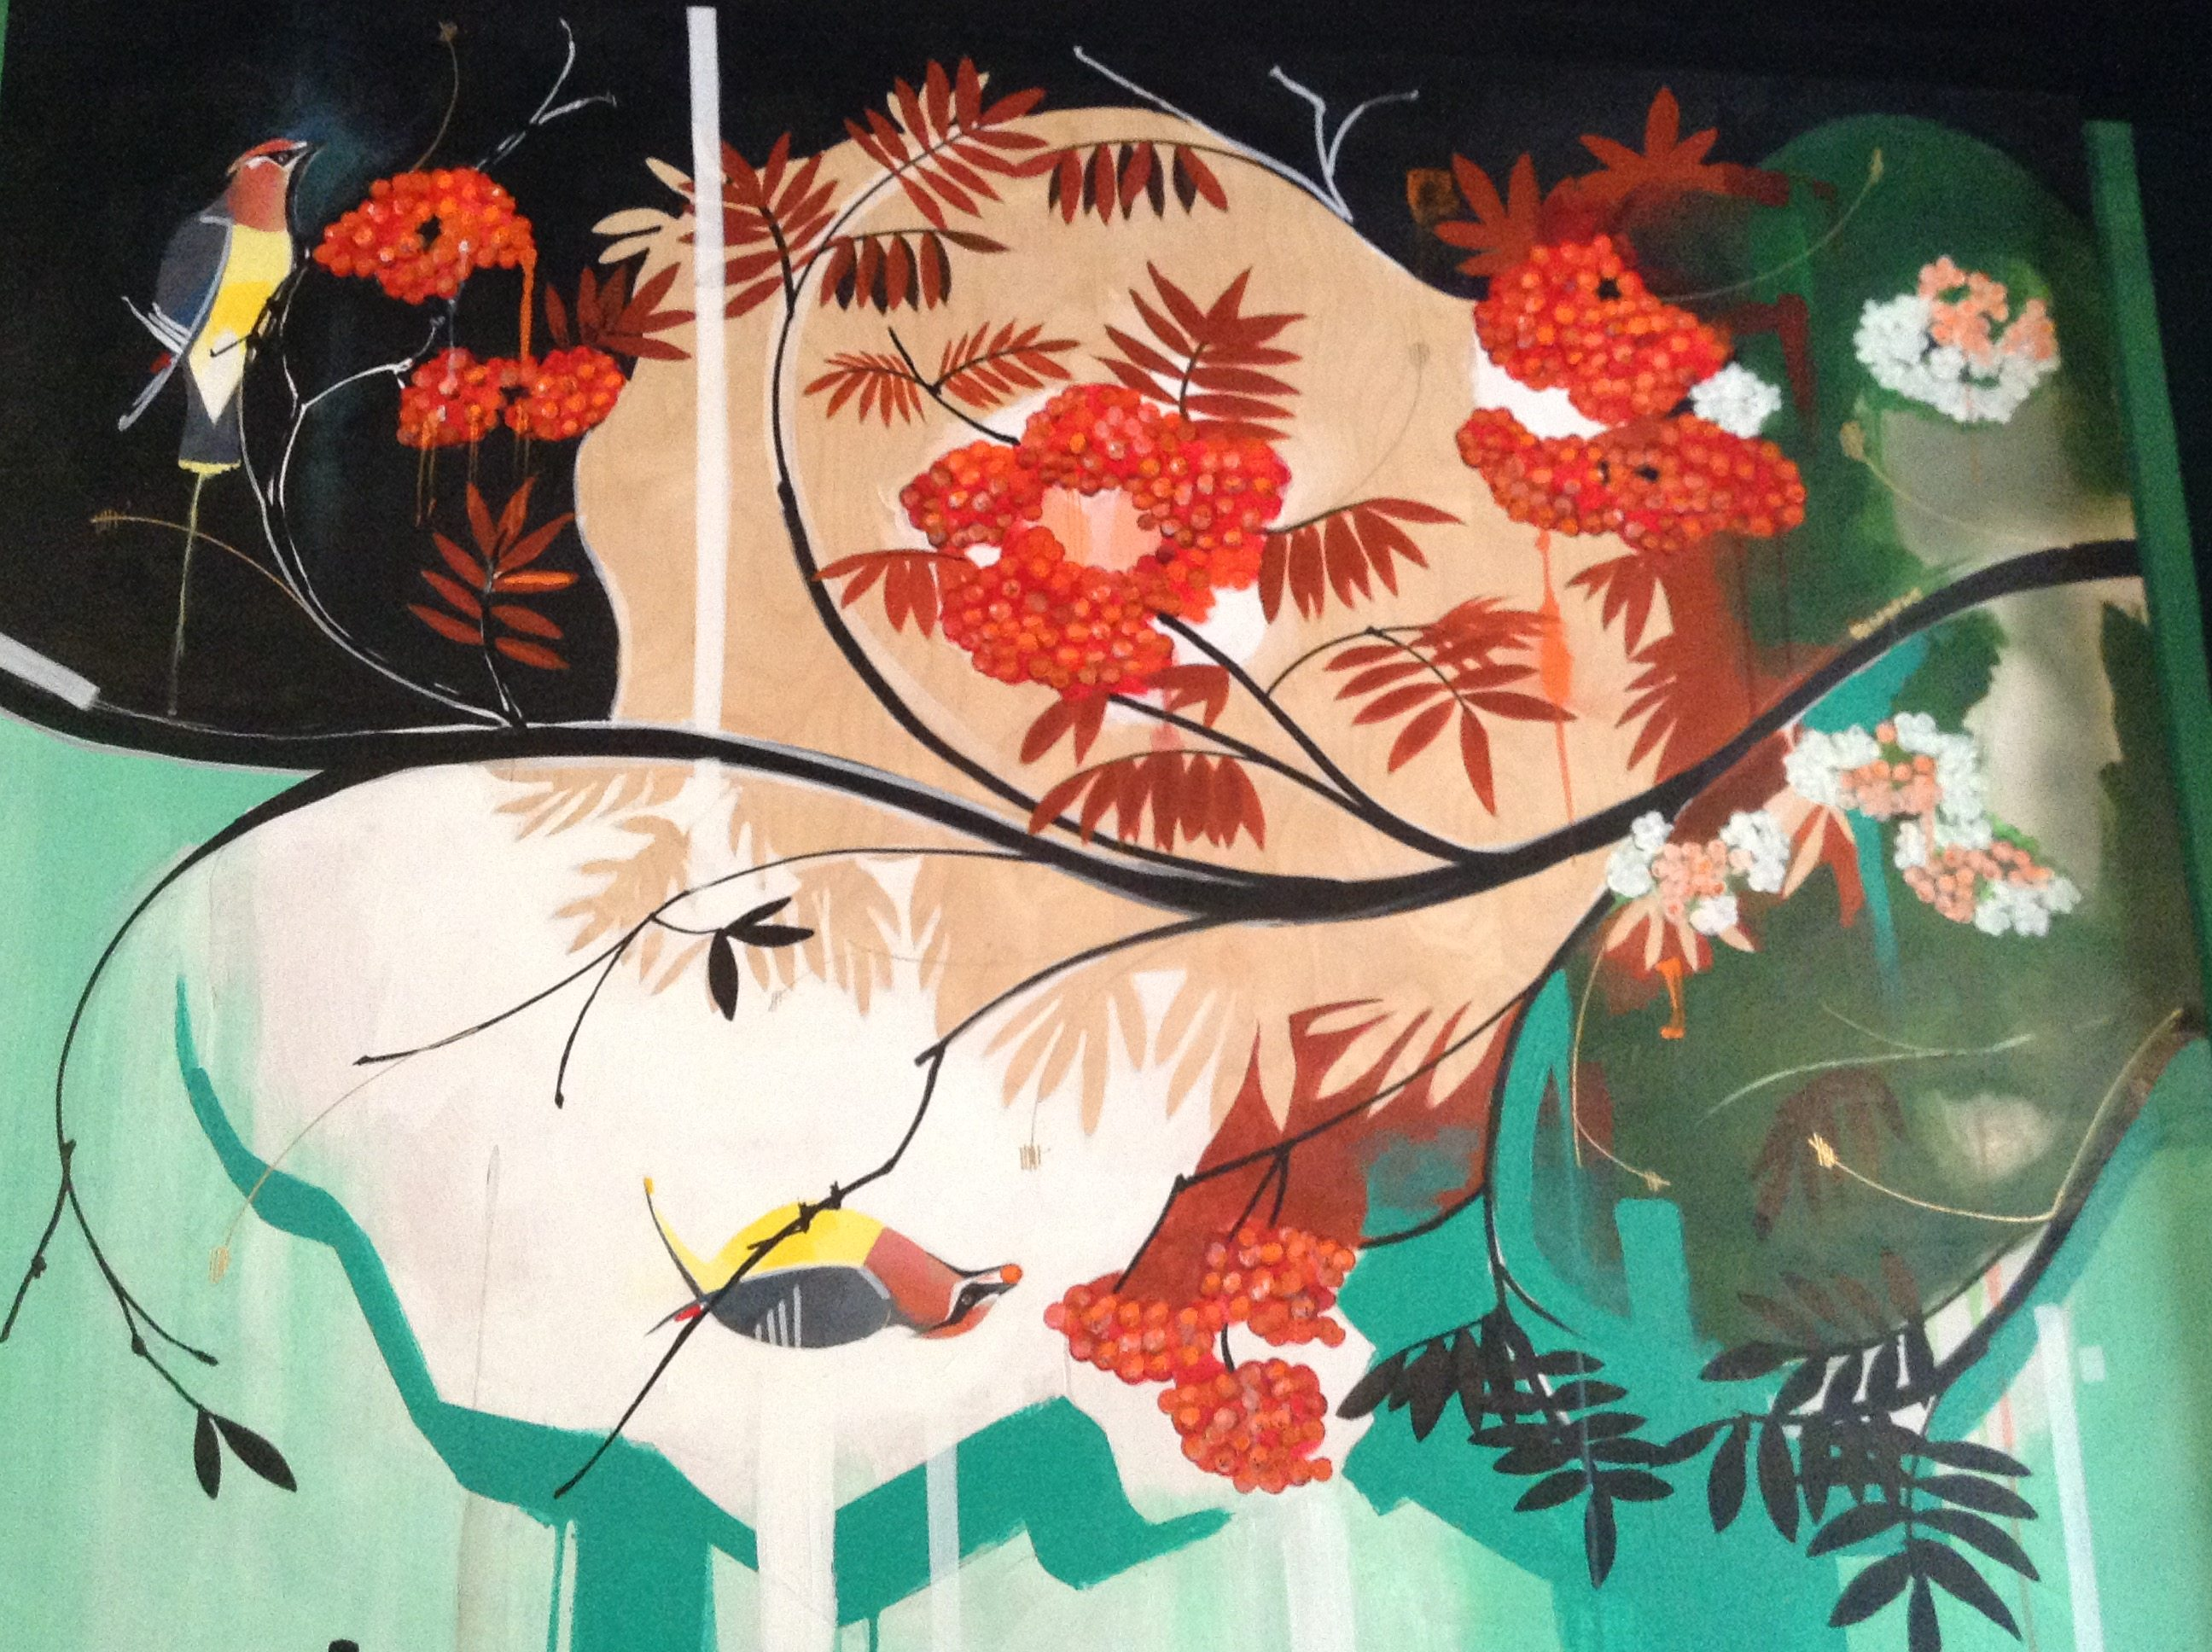 In one panel of the extended mural, the branches of the restaurant's namesake rowan tree play host to colourful waxwings.